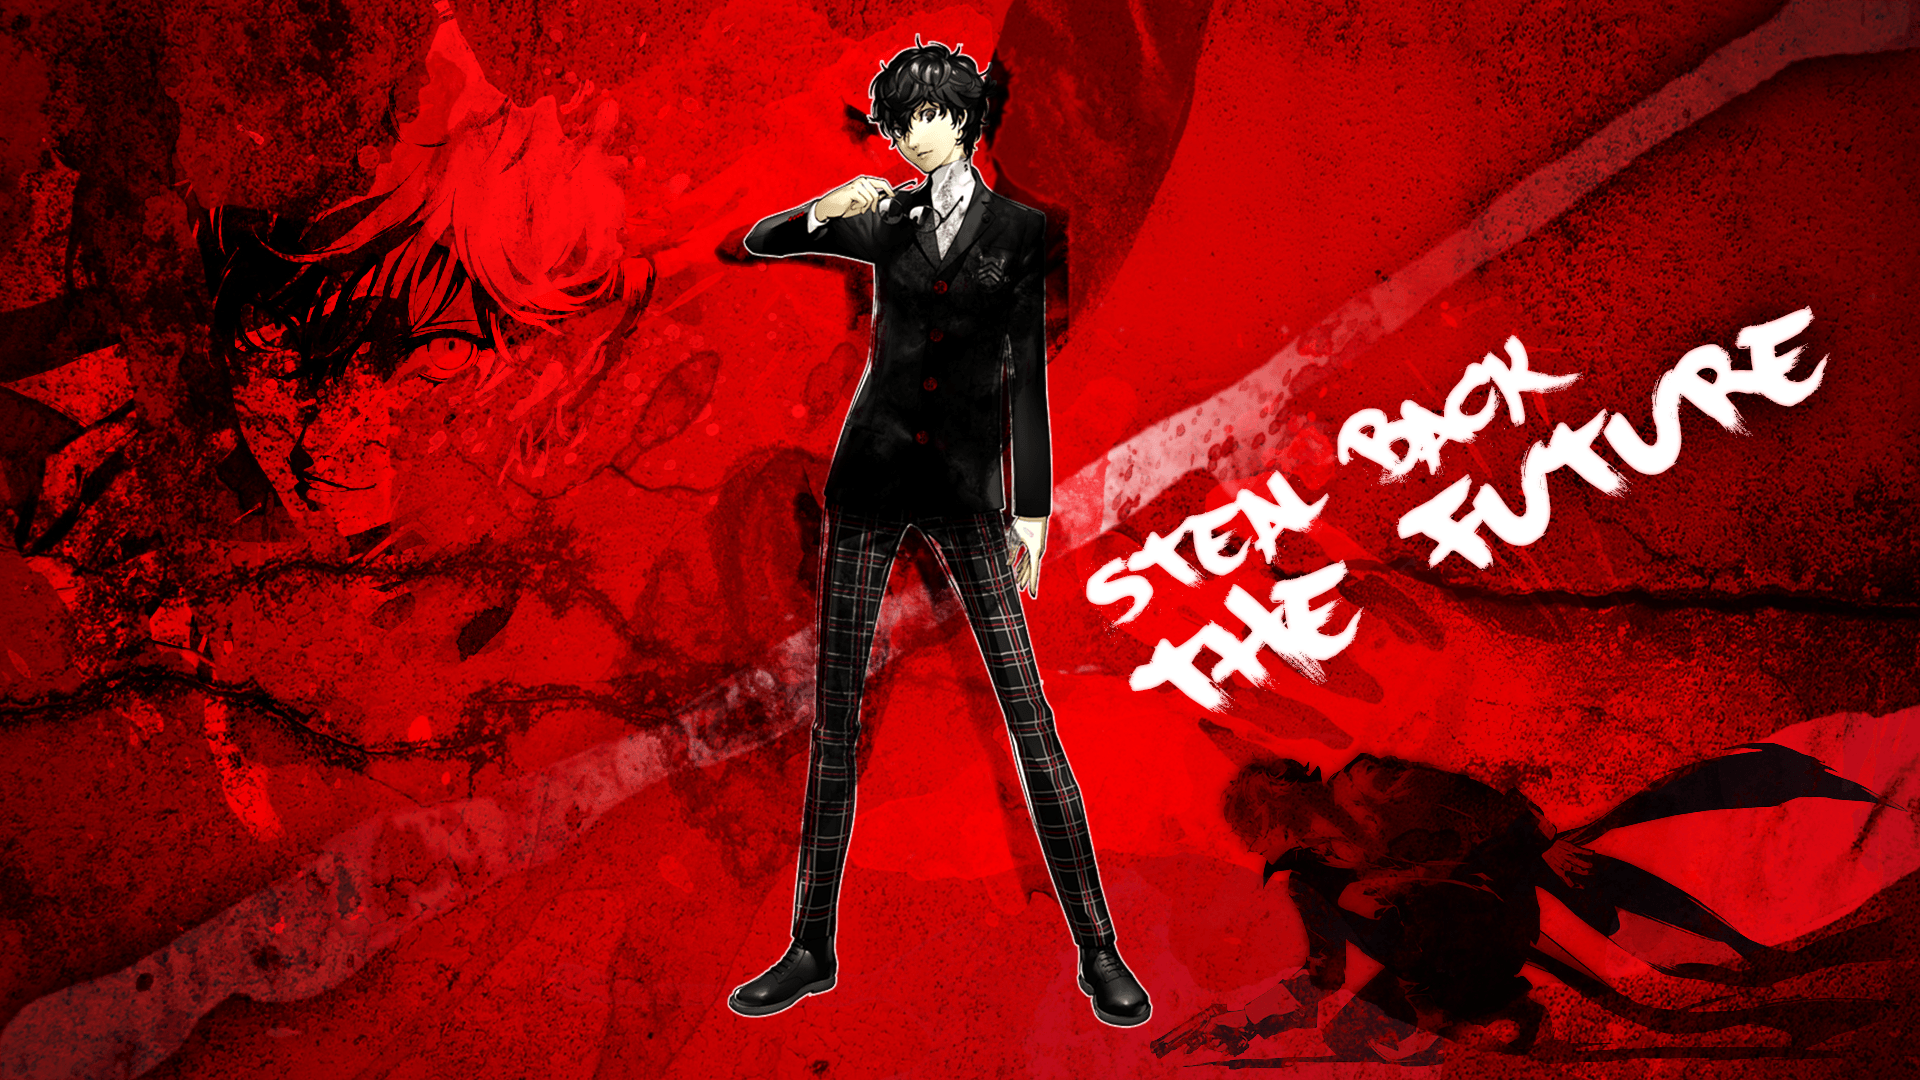 persona 5 hd wallpaper